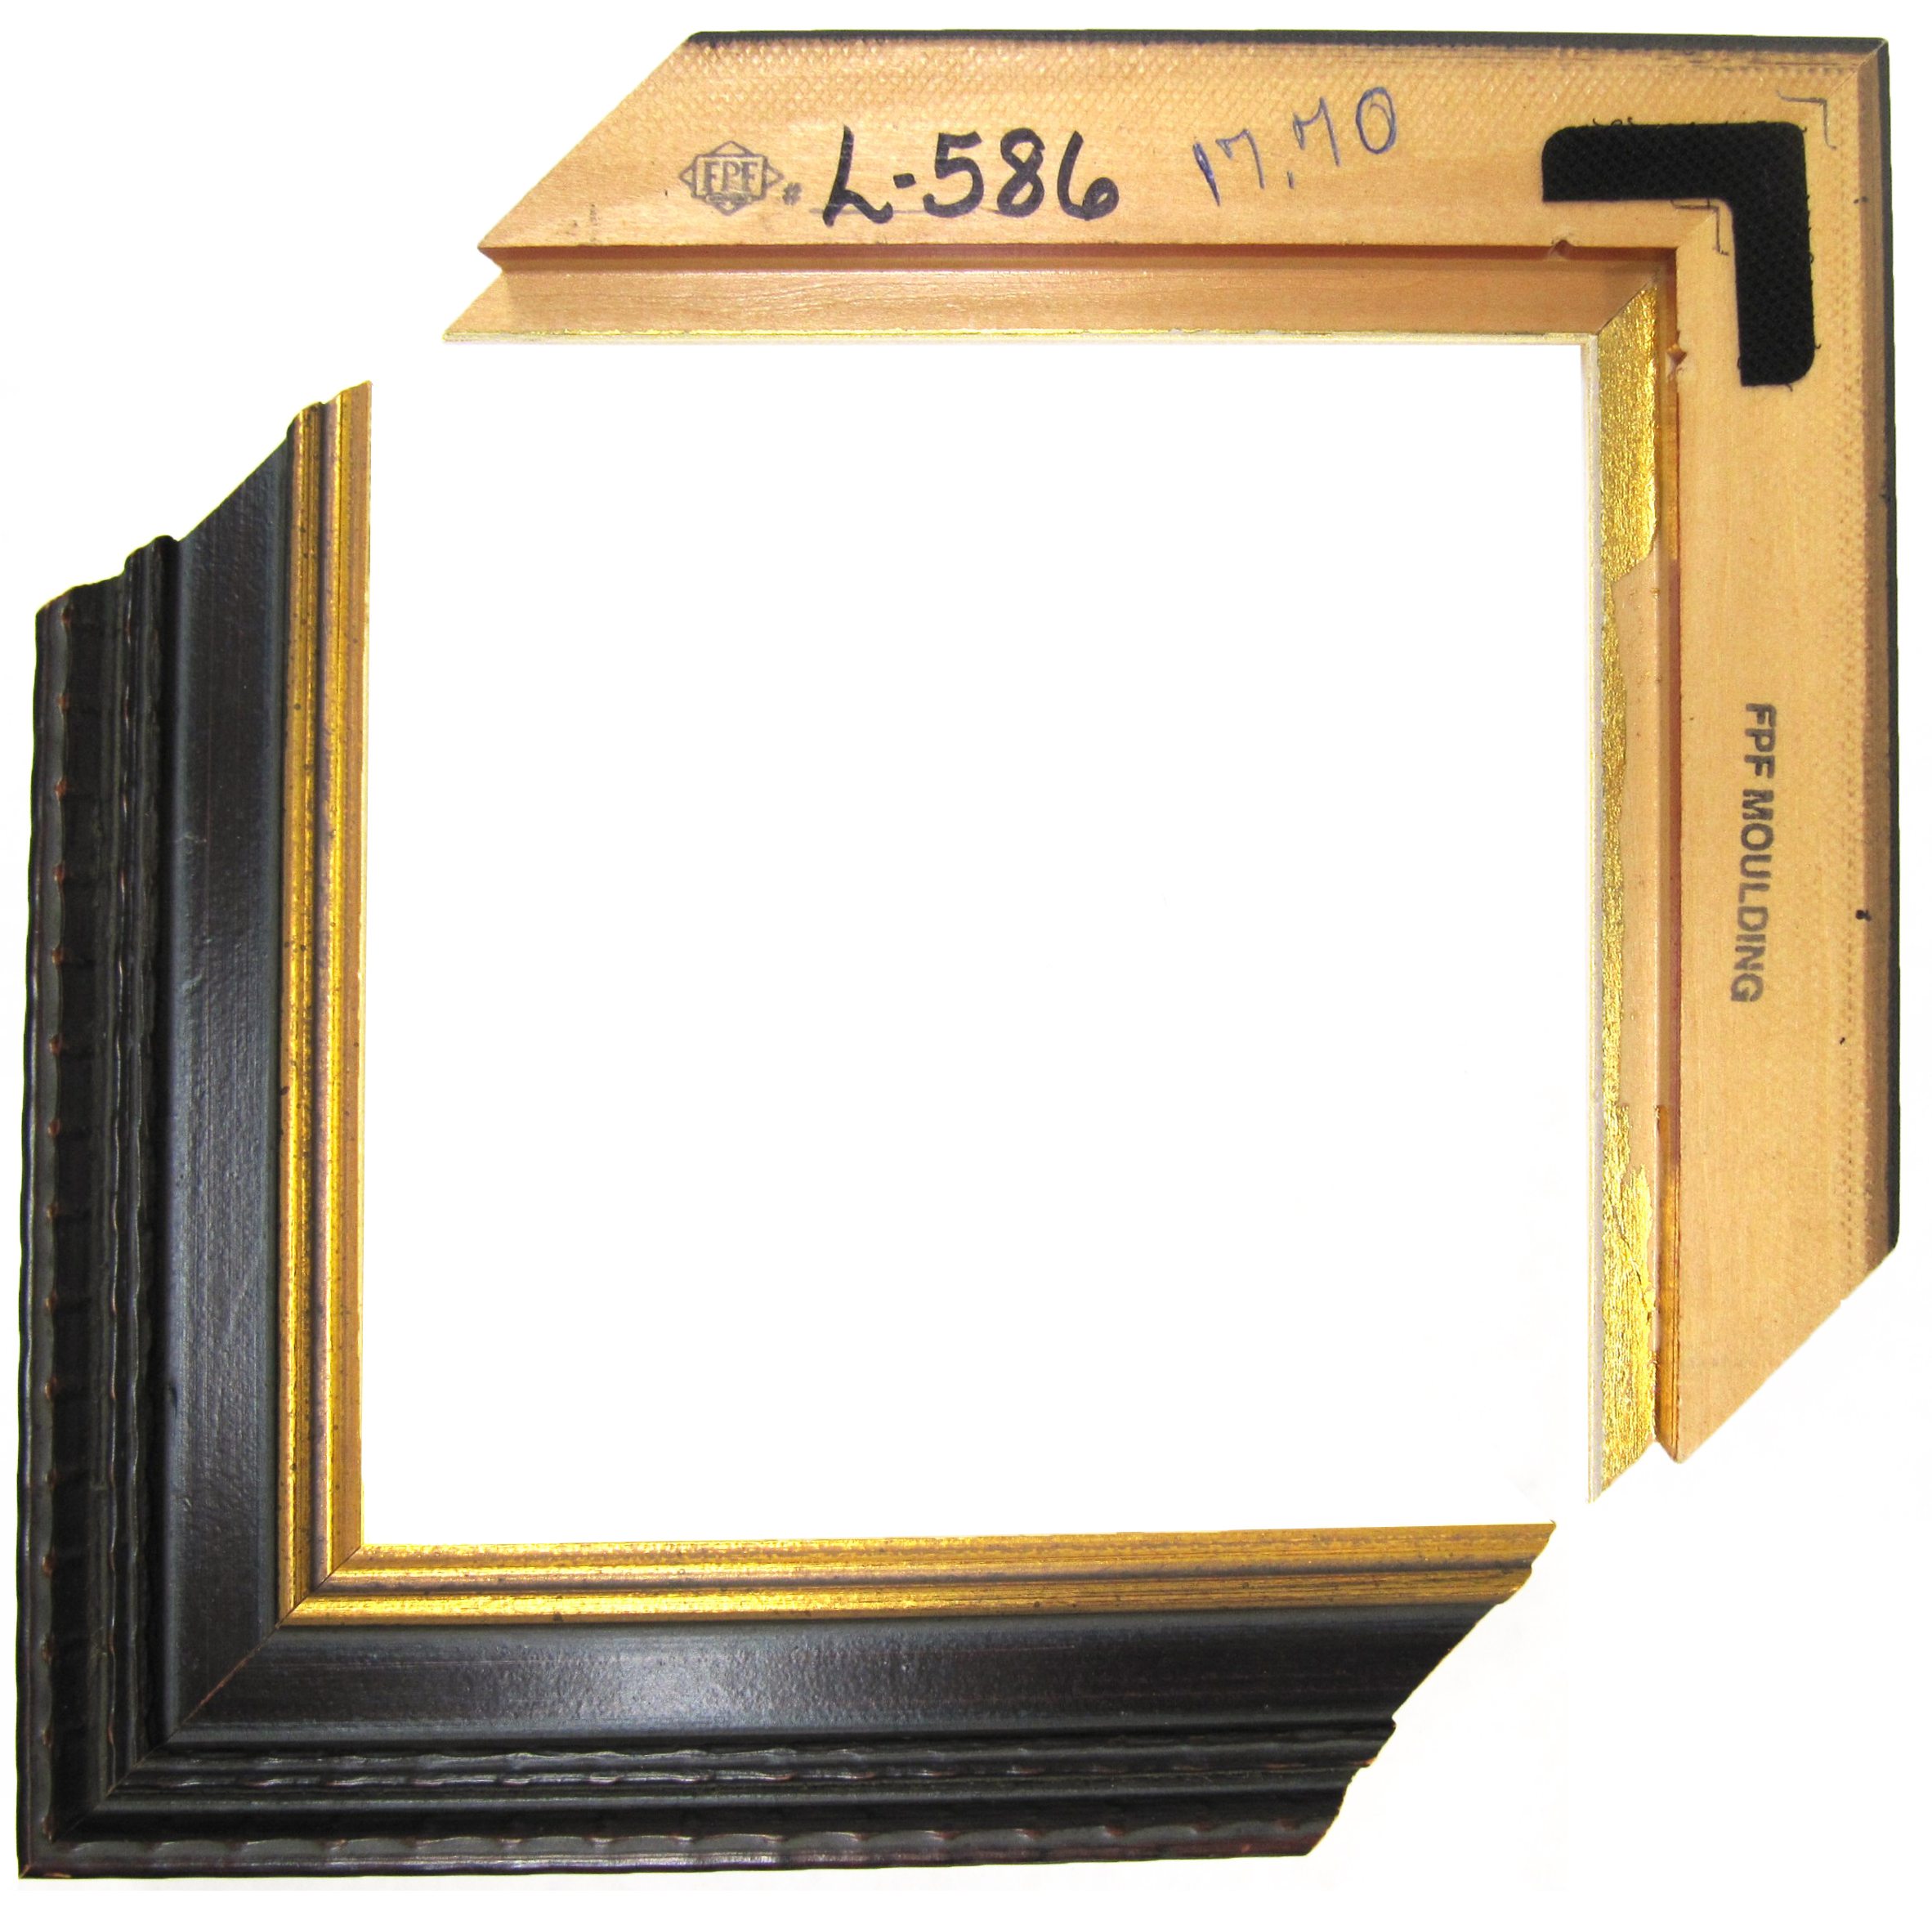 Archival Framing - Learn about how to display your pieces and the importance of safe framing.